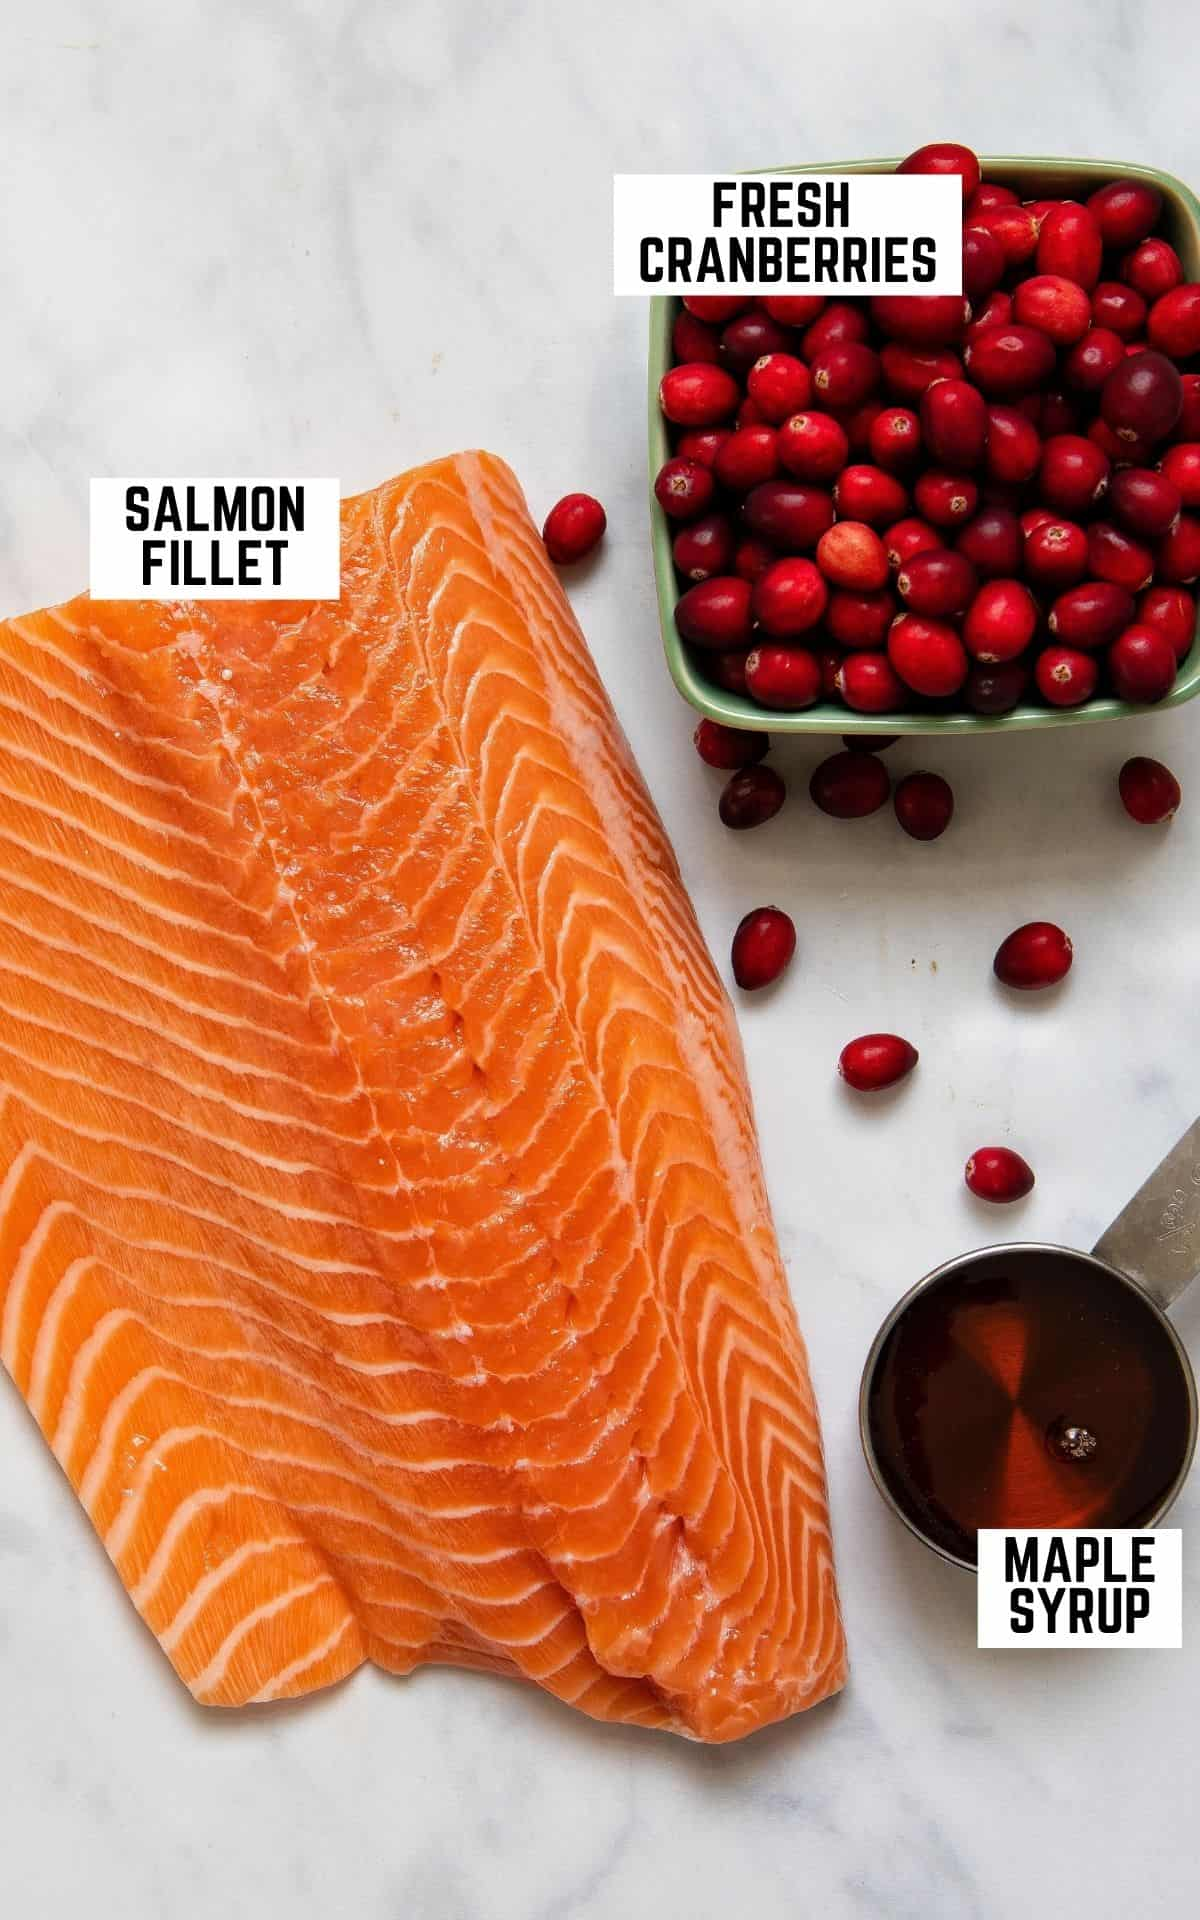 Overhead image of ingredients for the recipe: salmon, cranberries, and maple syrup.